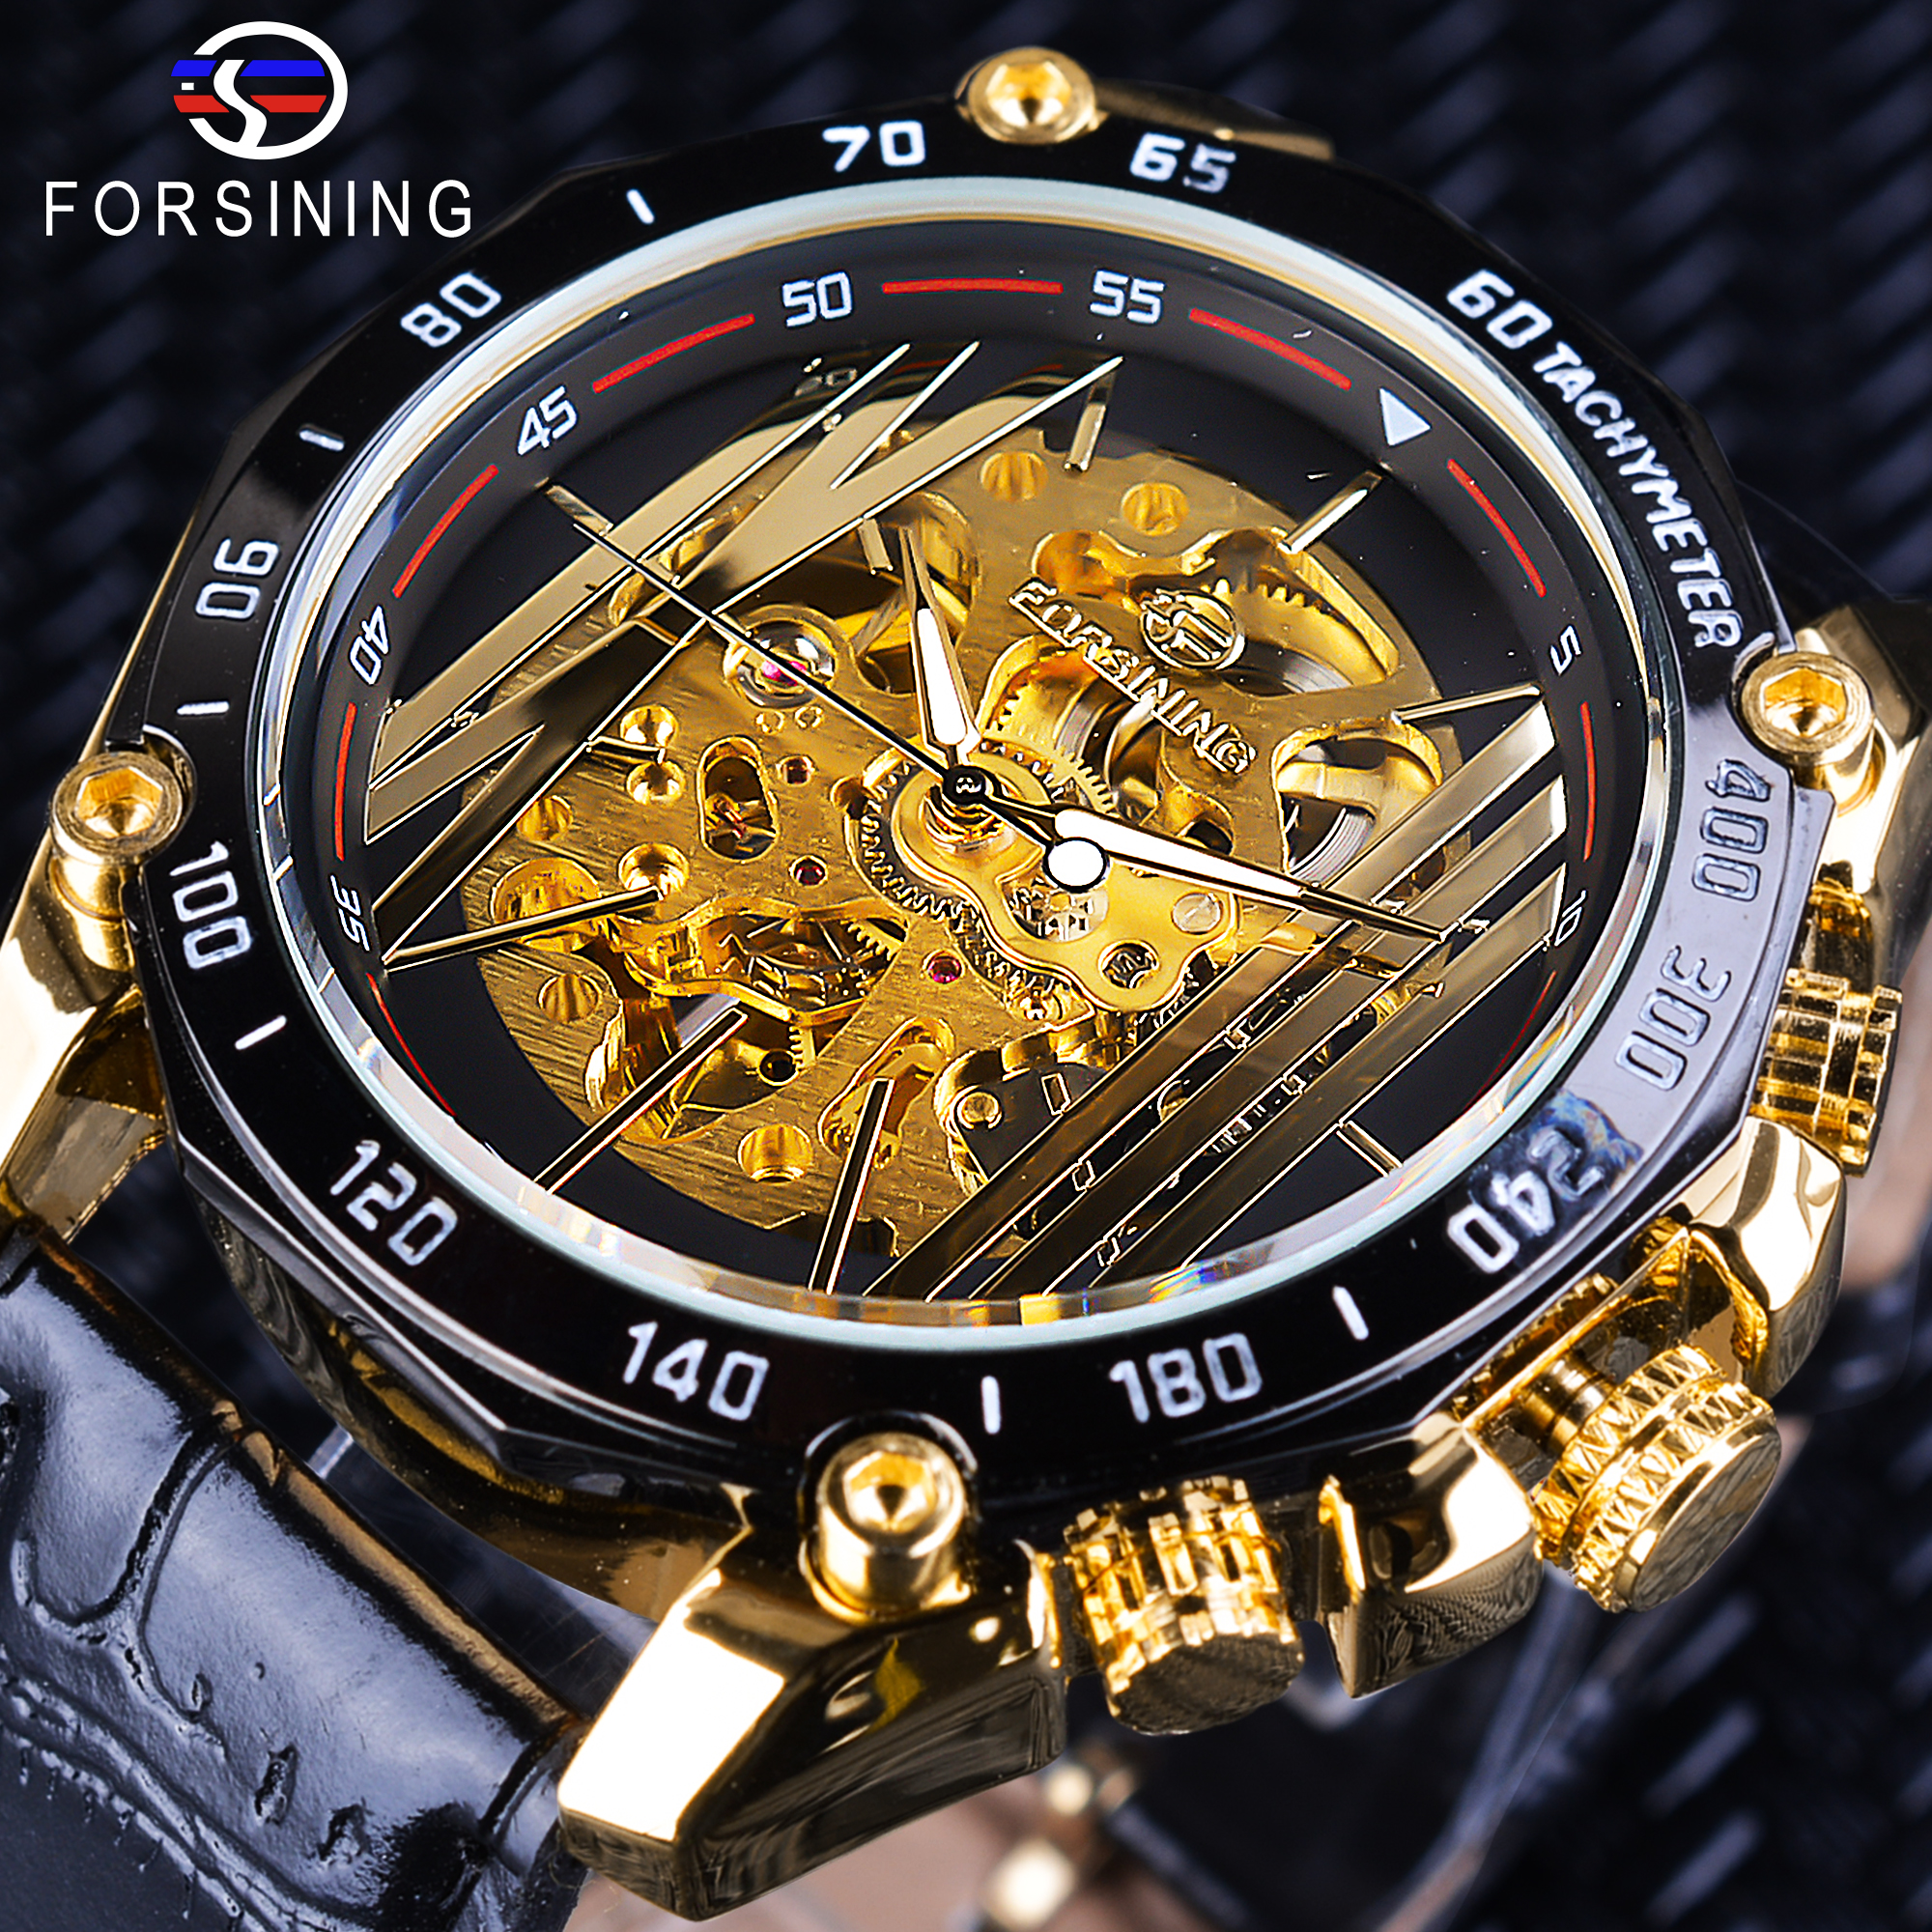 Forsining Big Dial Steampunk Design Luxury Golden Gear Movement Men Creative Openwork Watches Automatic Mechanical Wrist Watches forsining golden stainless steel sport watch steampunk men watch luminous openwork mechanical watches folding clasp with safety